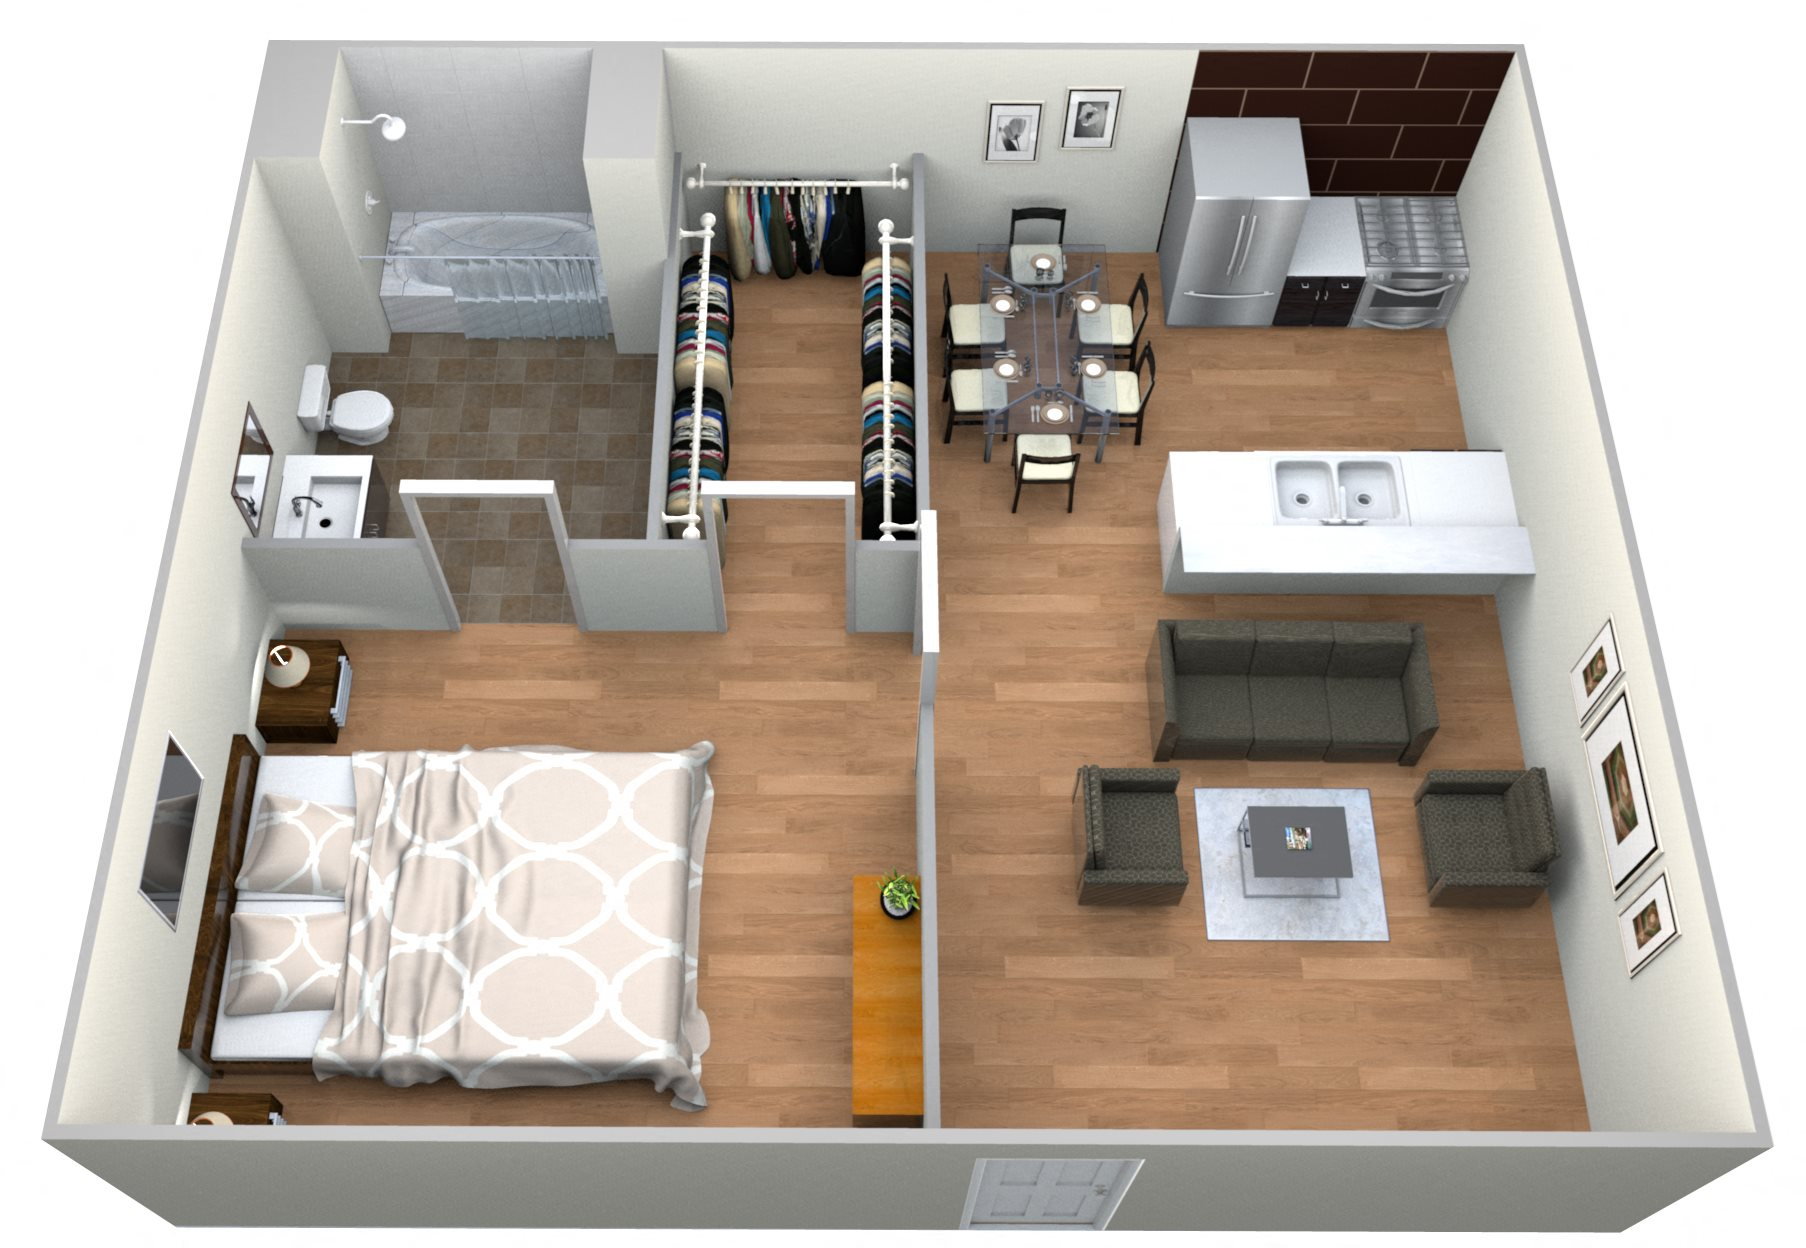 # 30 Drive Ups - 1 Bedroom w/ 1 Bath Floor Plan 8